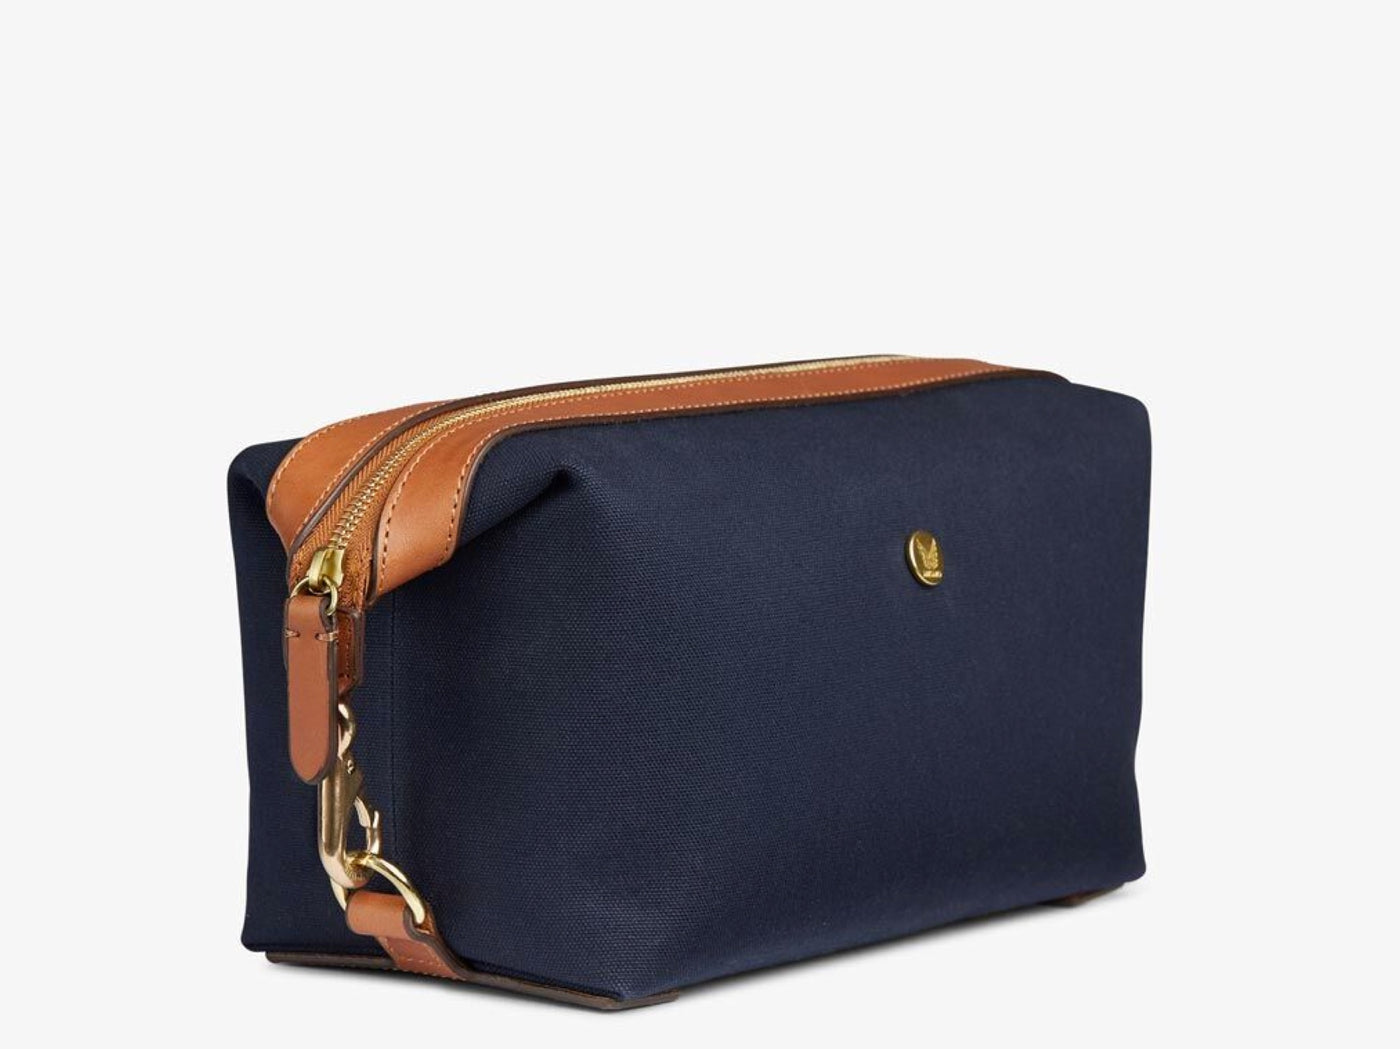 M/S Washbag - Midnight blue/Cuoio